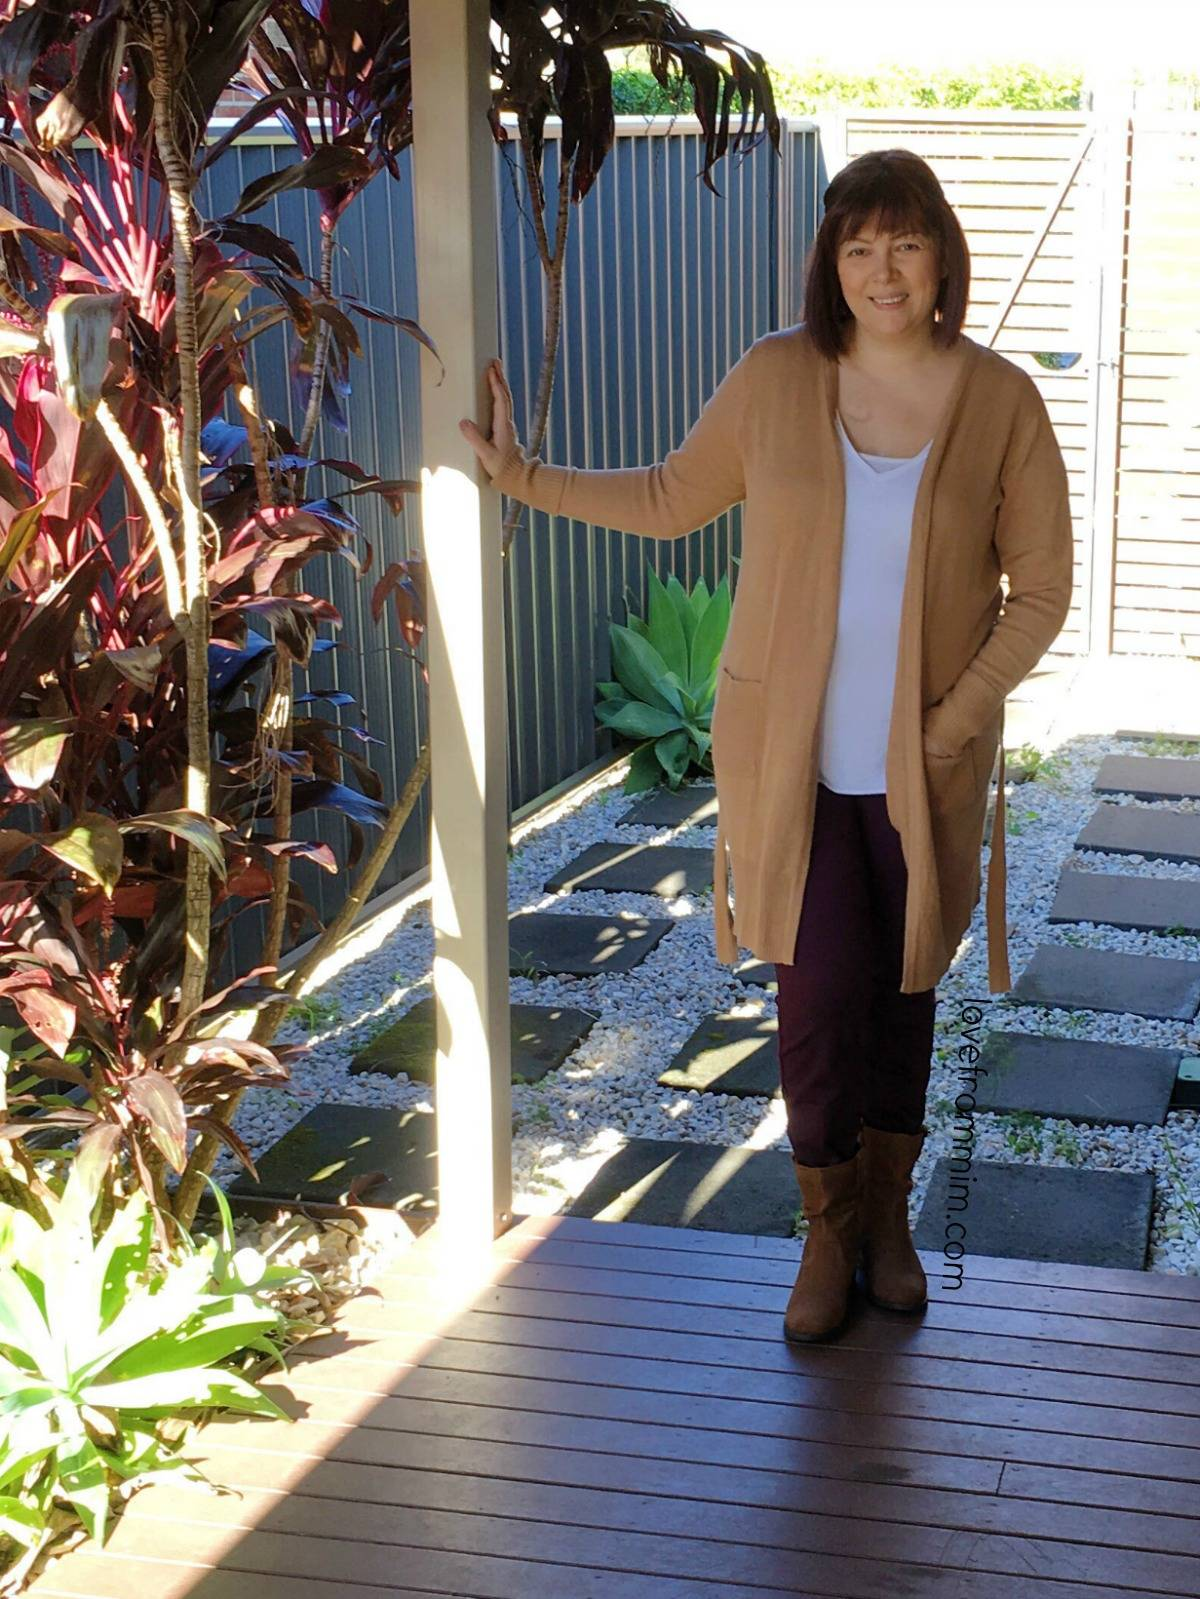 Updating my Winter Wardrobe with Rockmans - lovefrommim.com Chunky Knit Black Jumper Black Leggings Black Ankle Boots Autumn Outfit Idea Winter Outfit Idea Rockmans Long Sleeved Tan Belted Cardigan in Biscotti Rockmans Full Length High Waisted Jeggings in Bordeaux